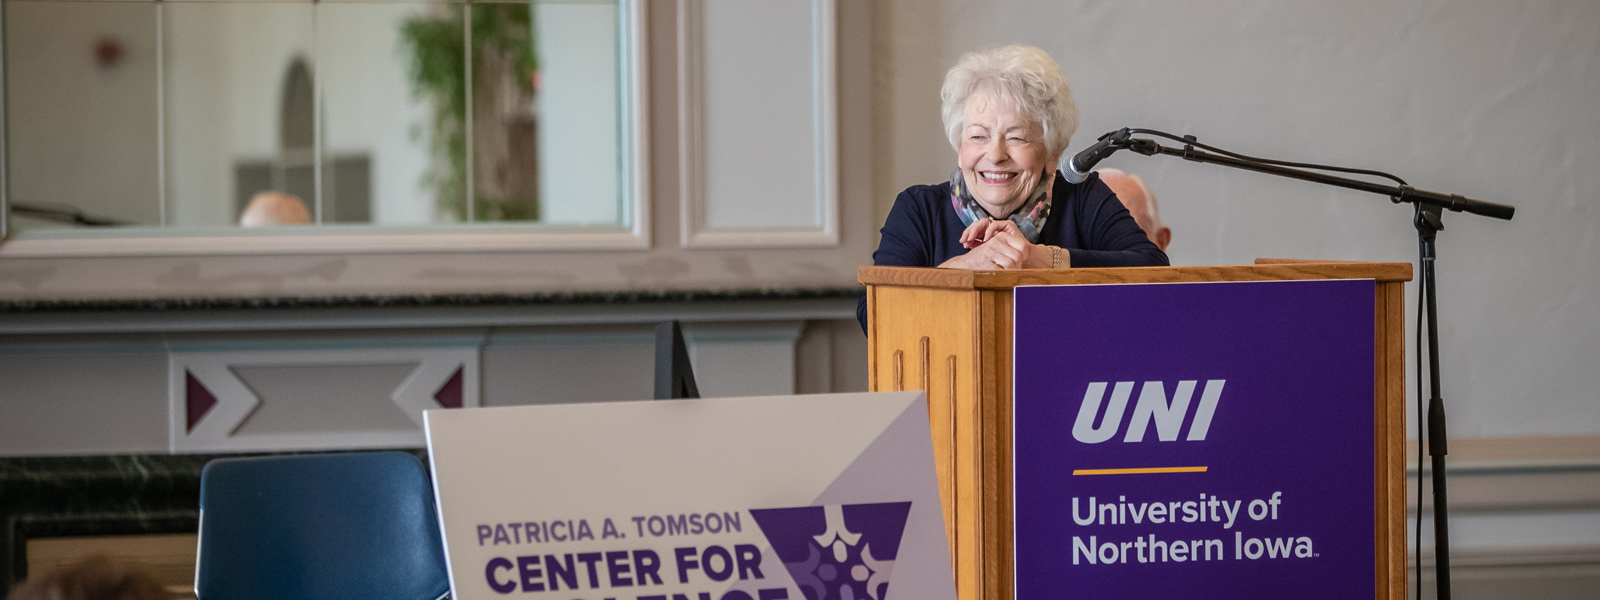 Patricia Tomson at the ceremony for the naming of the Patricia A. Tomson Center for Violence Prevention